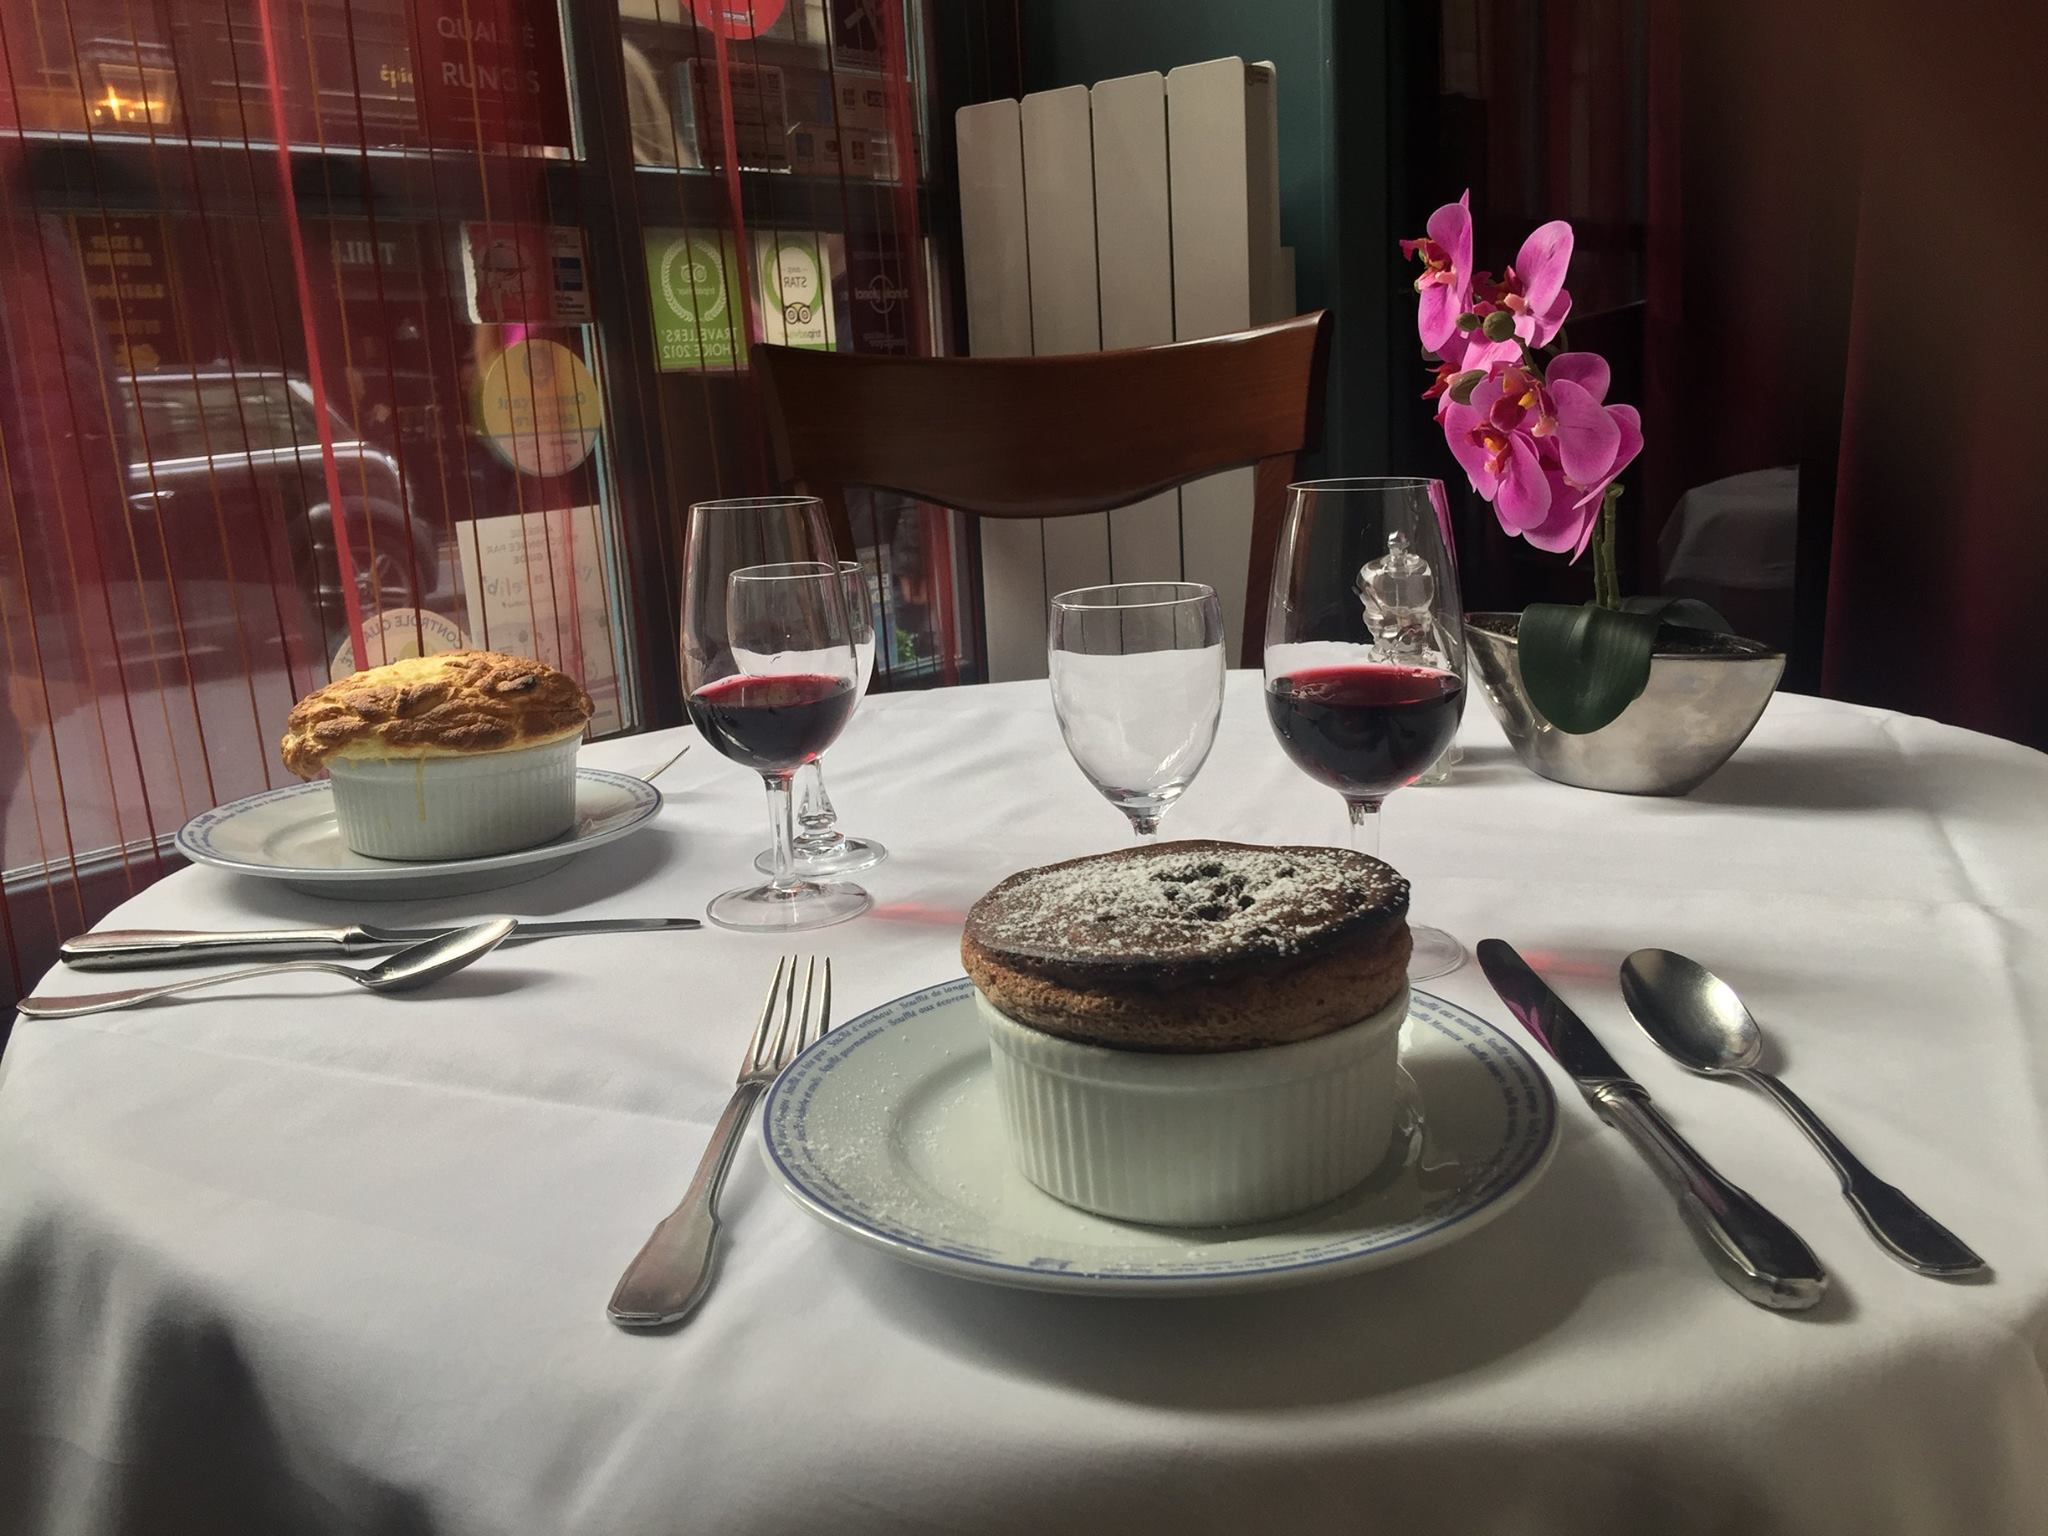 A table at Le Souffle restaurant with cheese and chocolate souffles, one of the best places to eat souffle in Paris.